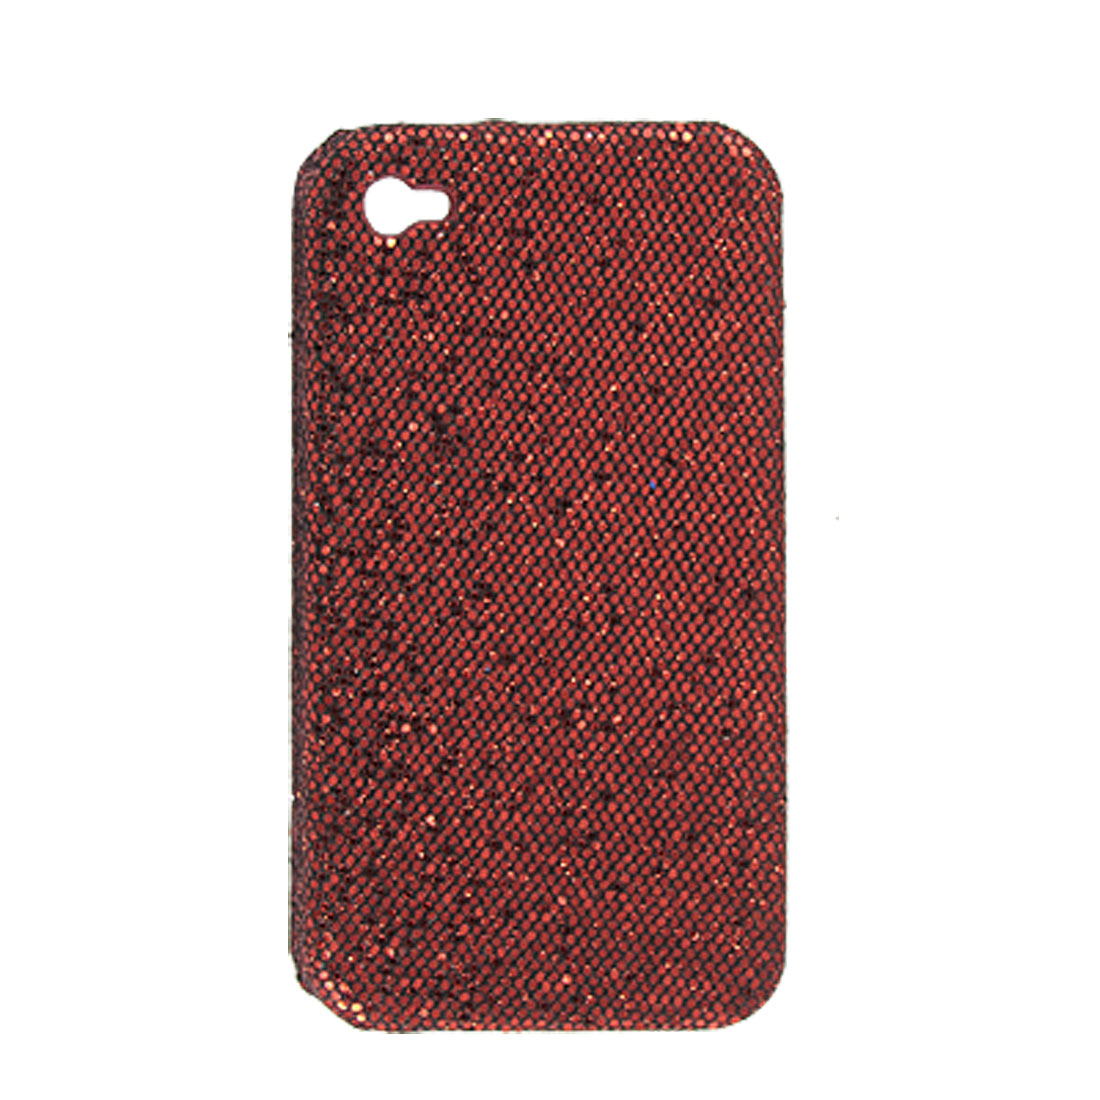 Glittery Antislip Red Hard Plastic Cover Guard for iPhone 4